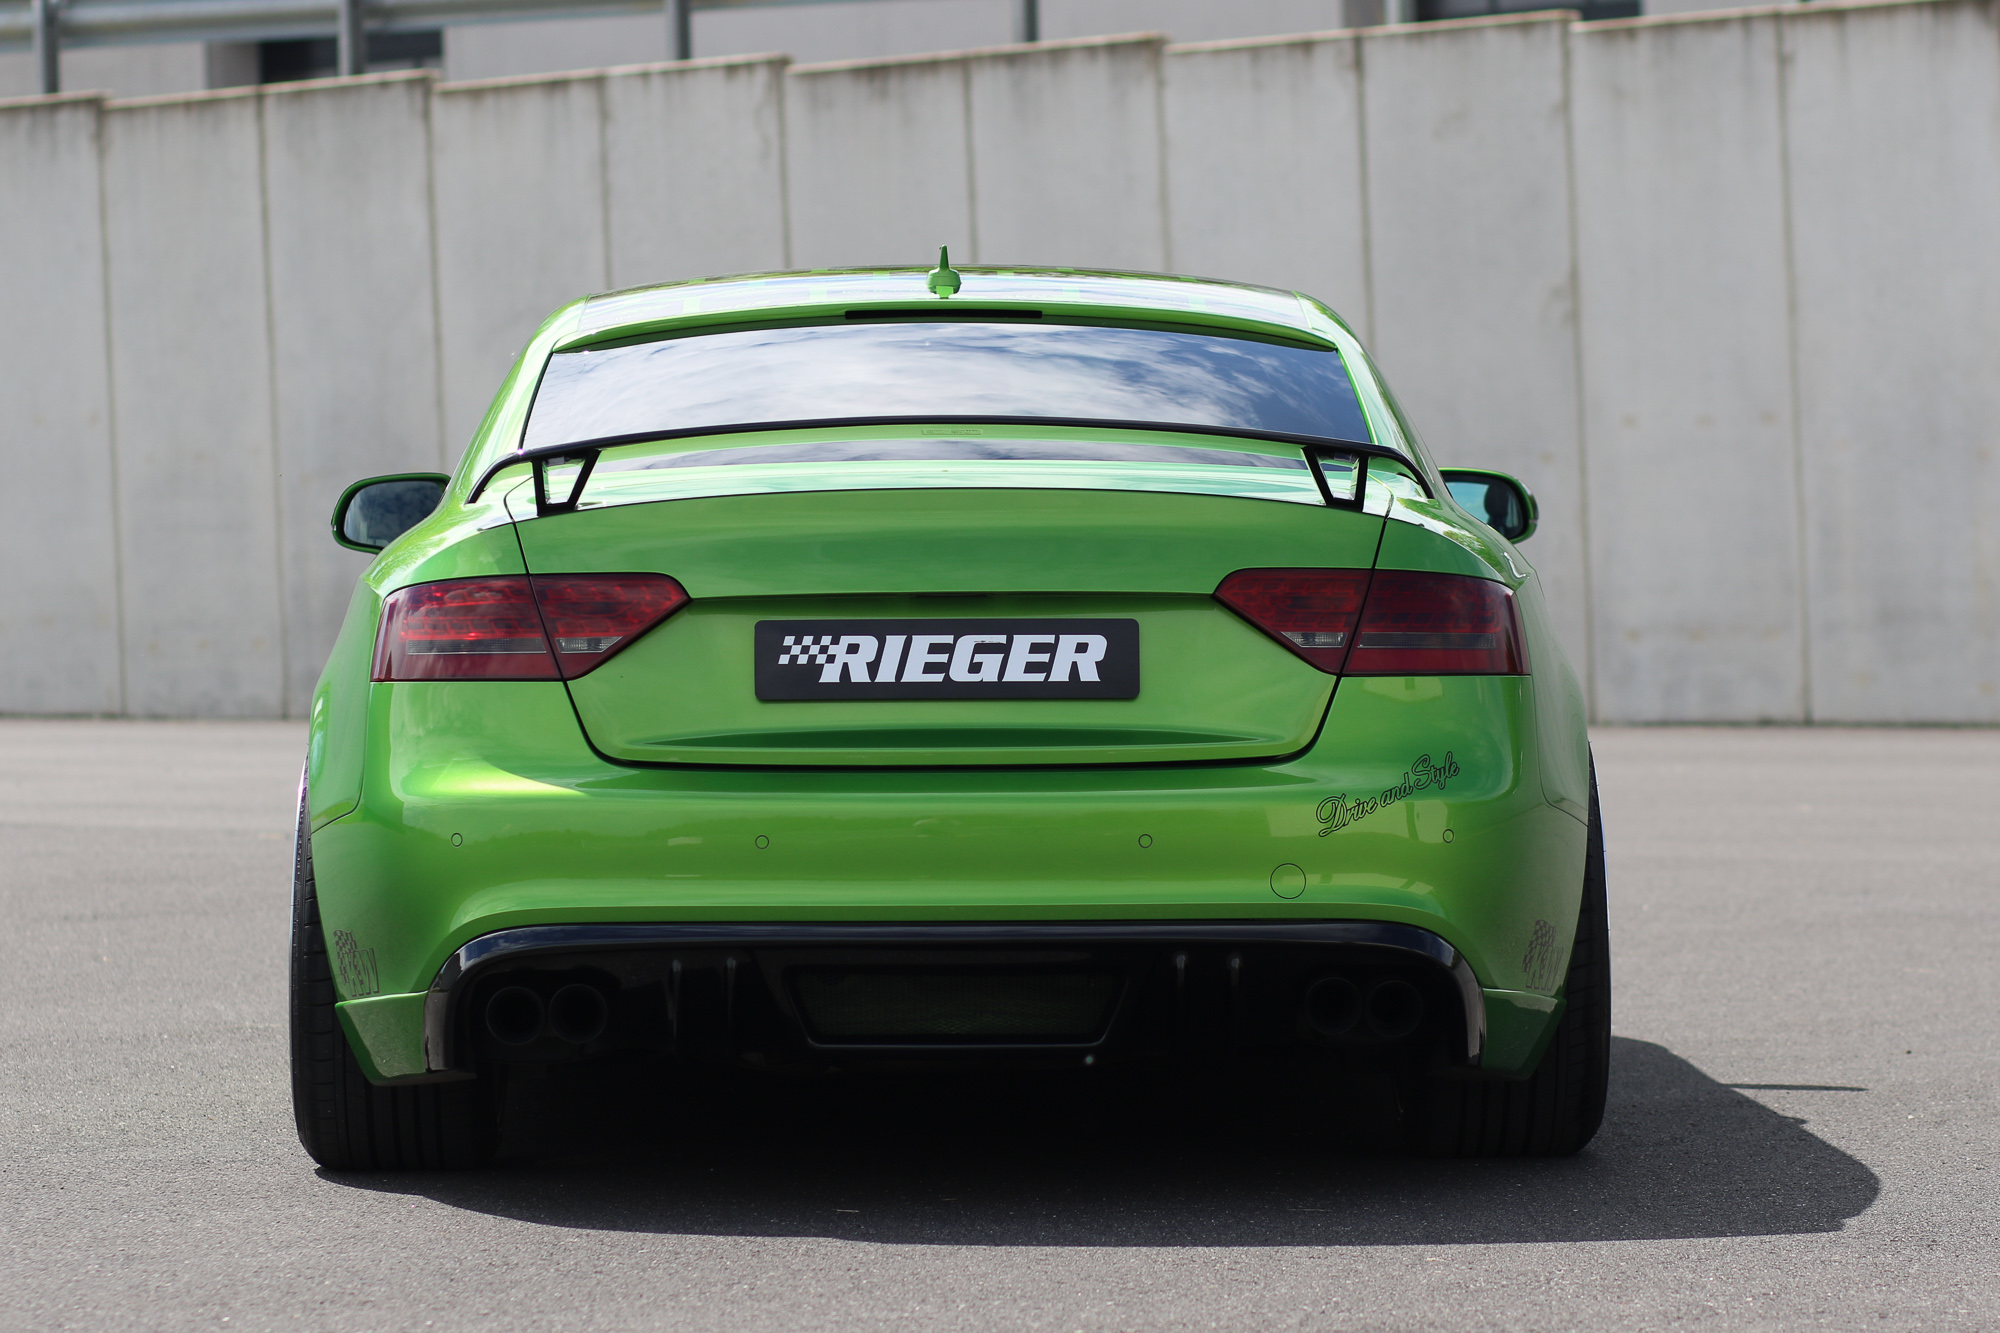 Audi-A5-Coupe-Tuning-Sweet-Green-AusfahrtTV-Tuning-Jens-Stratmann-3.jpg